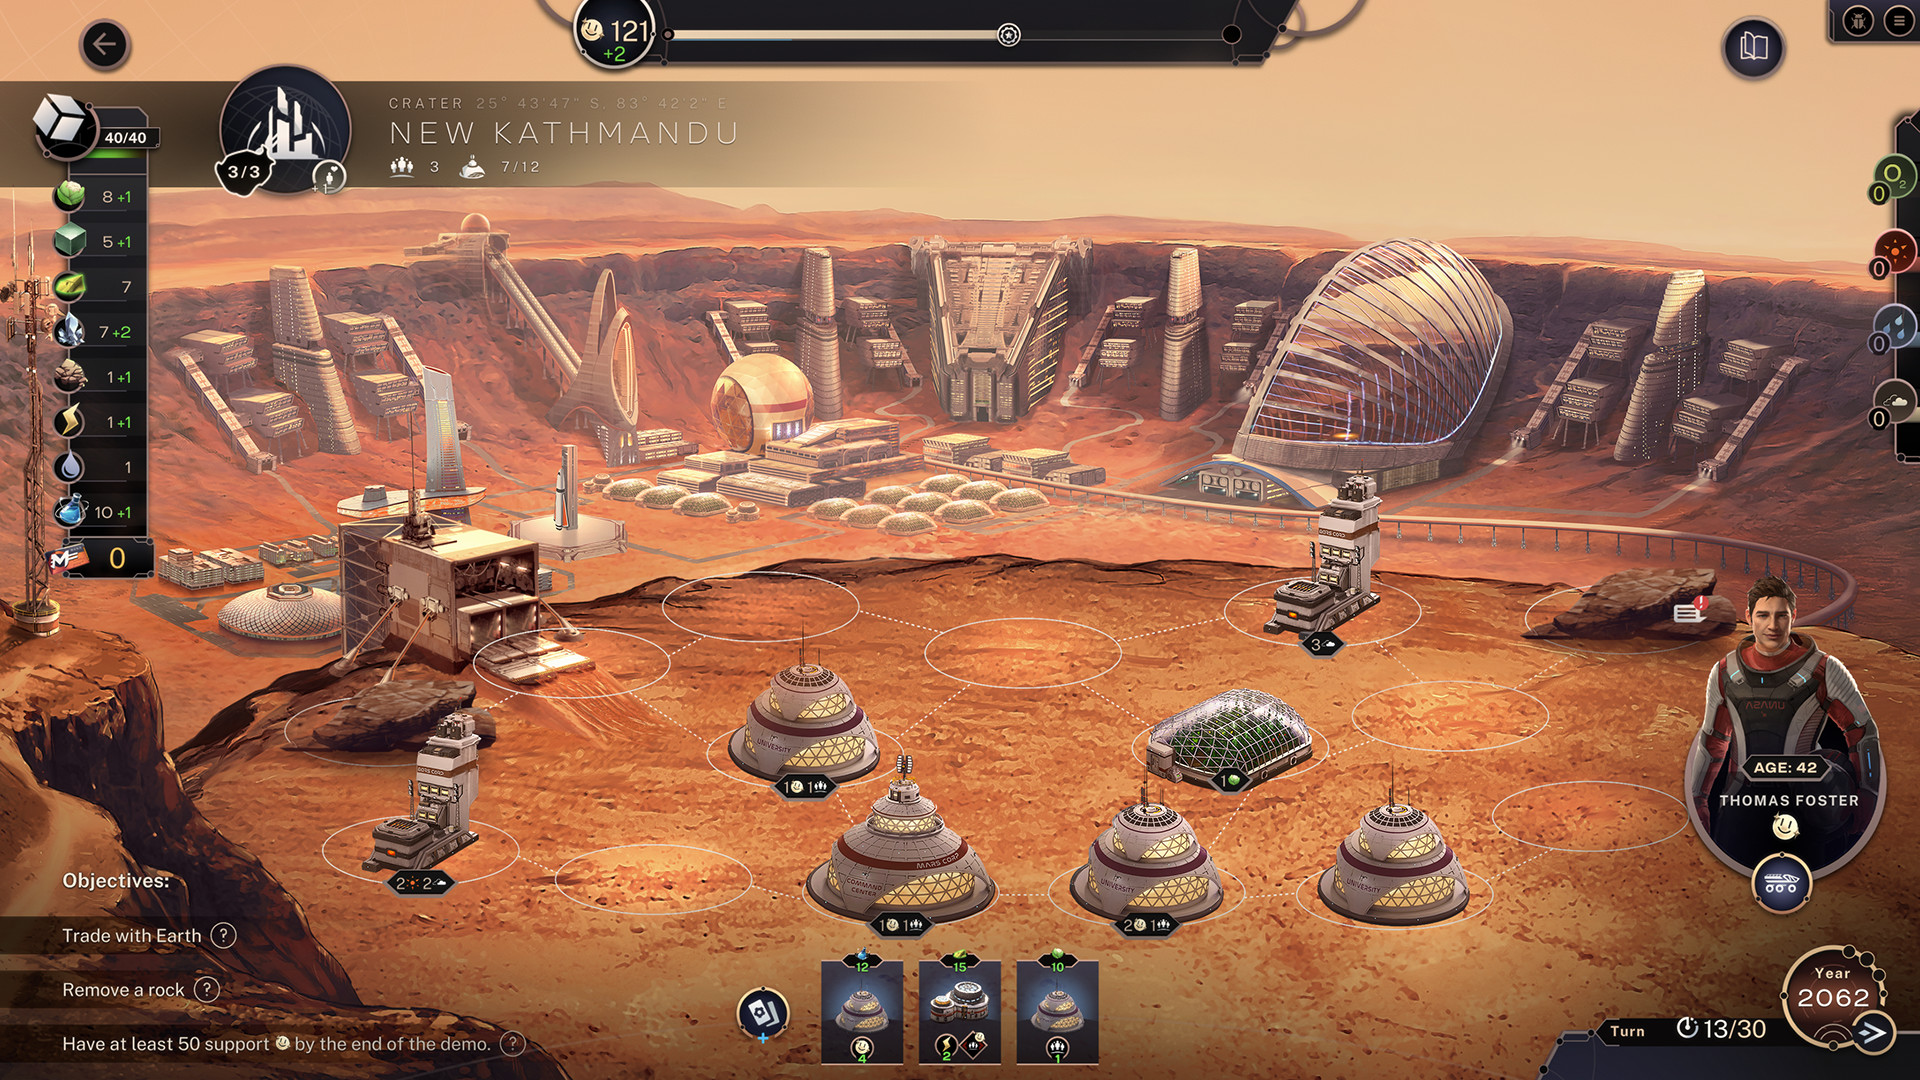 An image from Mars terraforming game Terraformers.